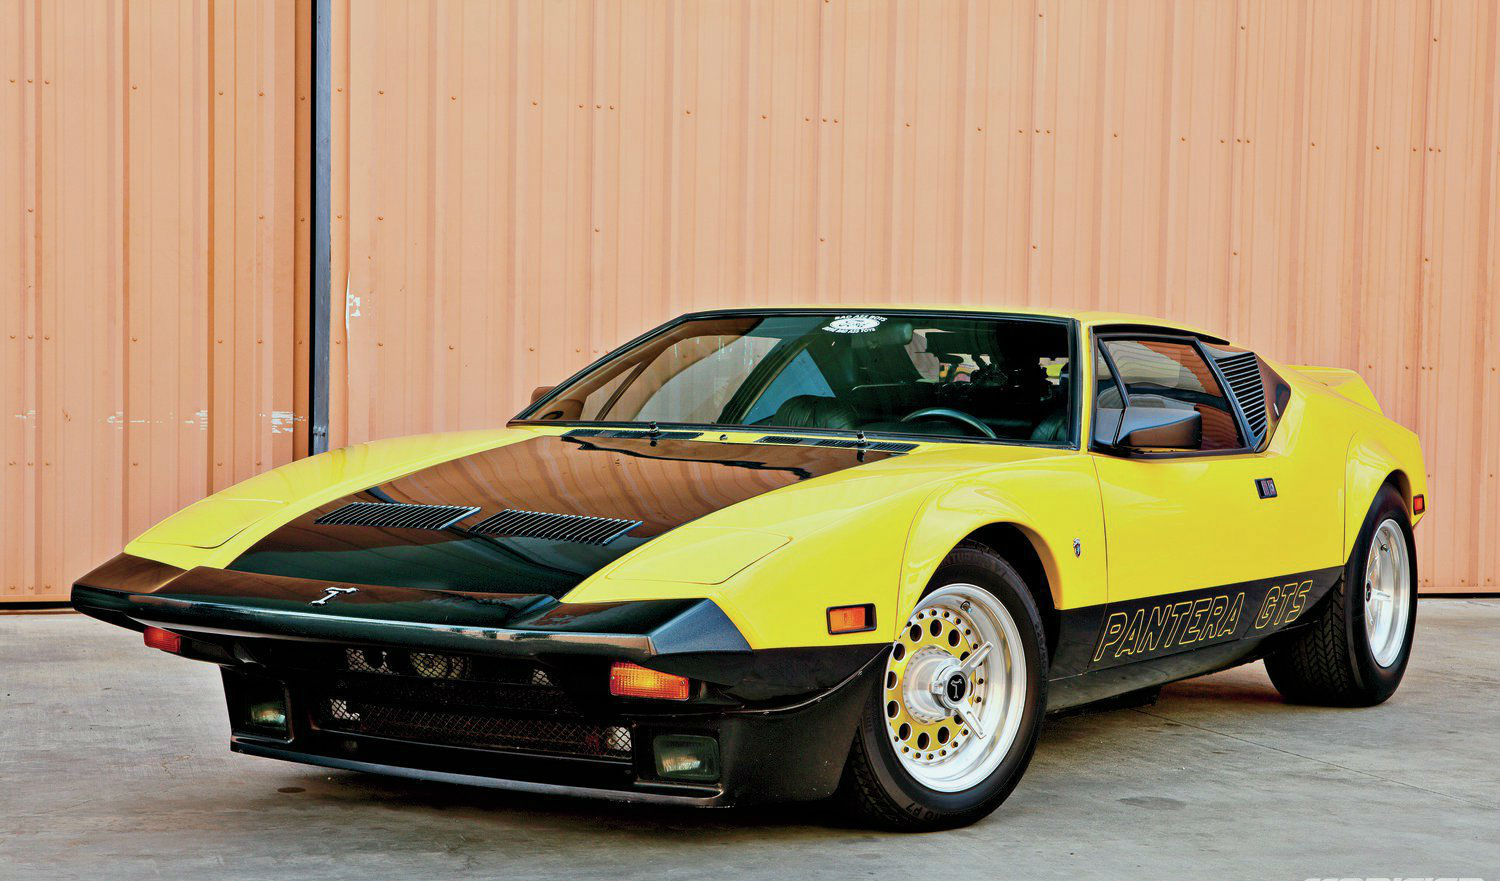 680HP 1974 Ford De Tomaso Pantera GTS - The Perfect Marriage of Old ...